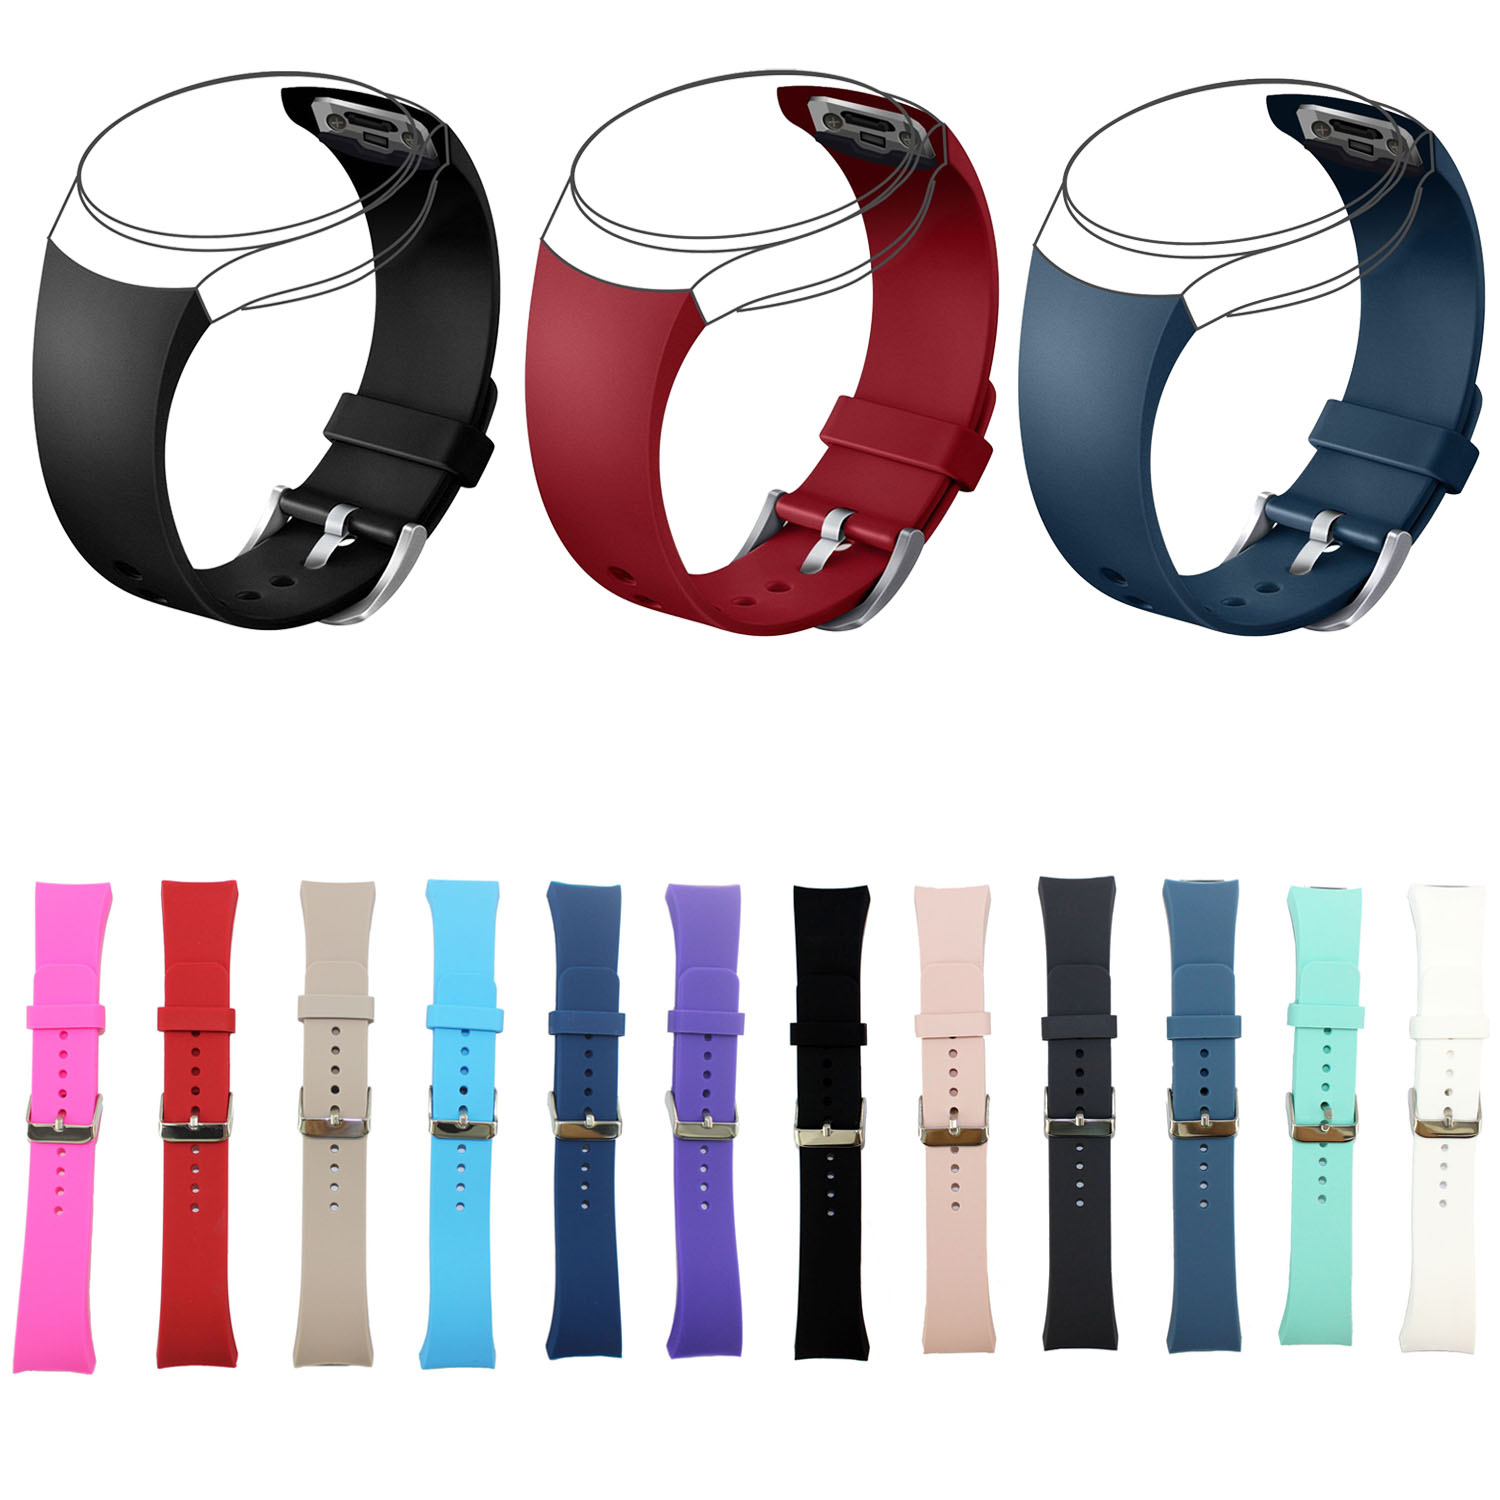 DAHASE 12 Colors Replacement Wrist Strap for Samsung Galaxy Gear S2 SM-R720 Silicone Watch Band Metal Buckle Wristband gear s2 watch band luxury tpu silicone strap watch band for samsung galaxy sm r720 colorful j